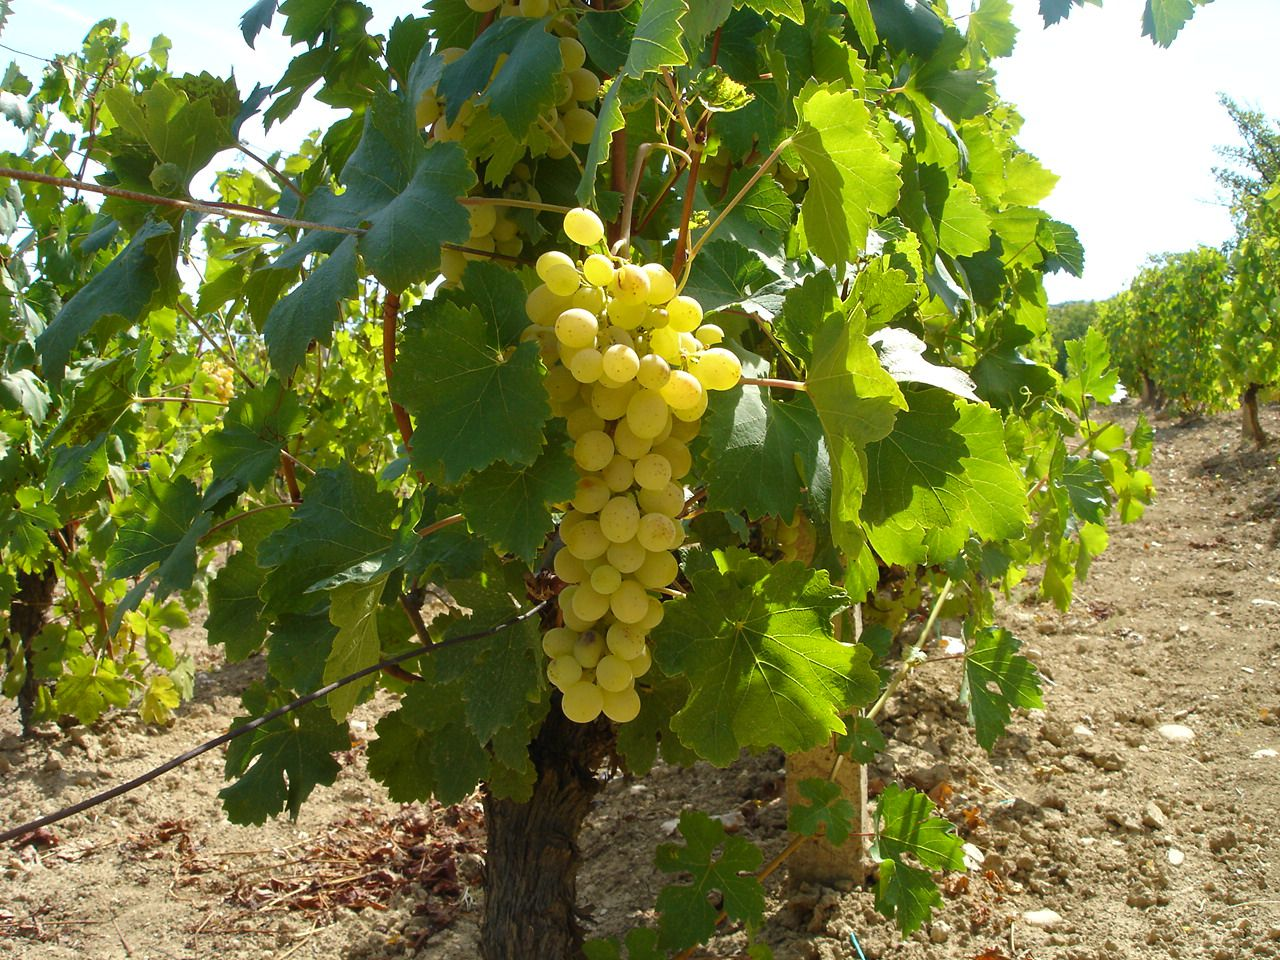 English Sparkling Wines Challenge the Supremacy of Champagne, France—Thanks to Climate Change - Smithsonian.com